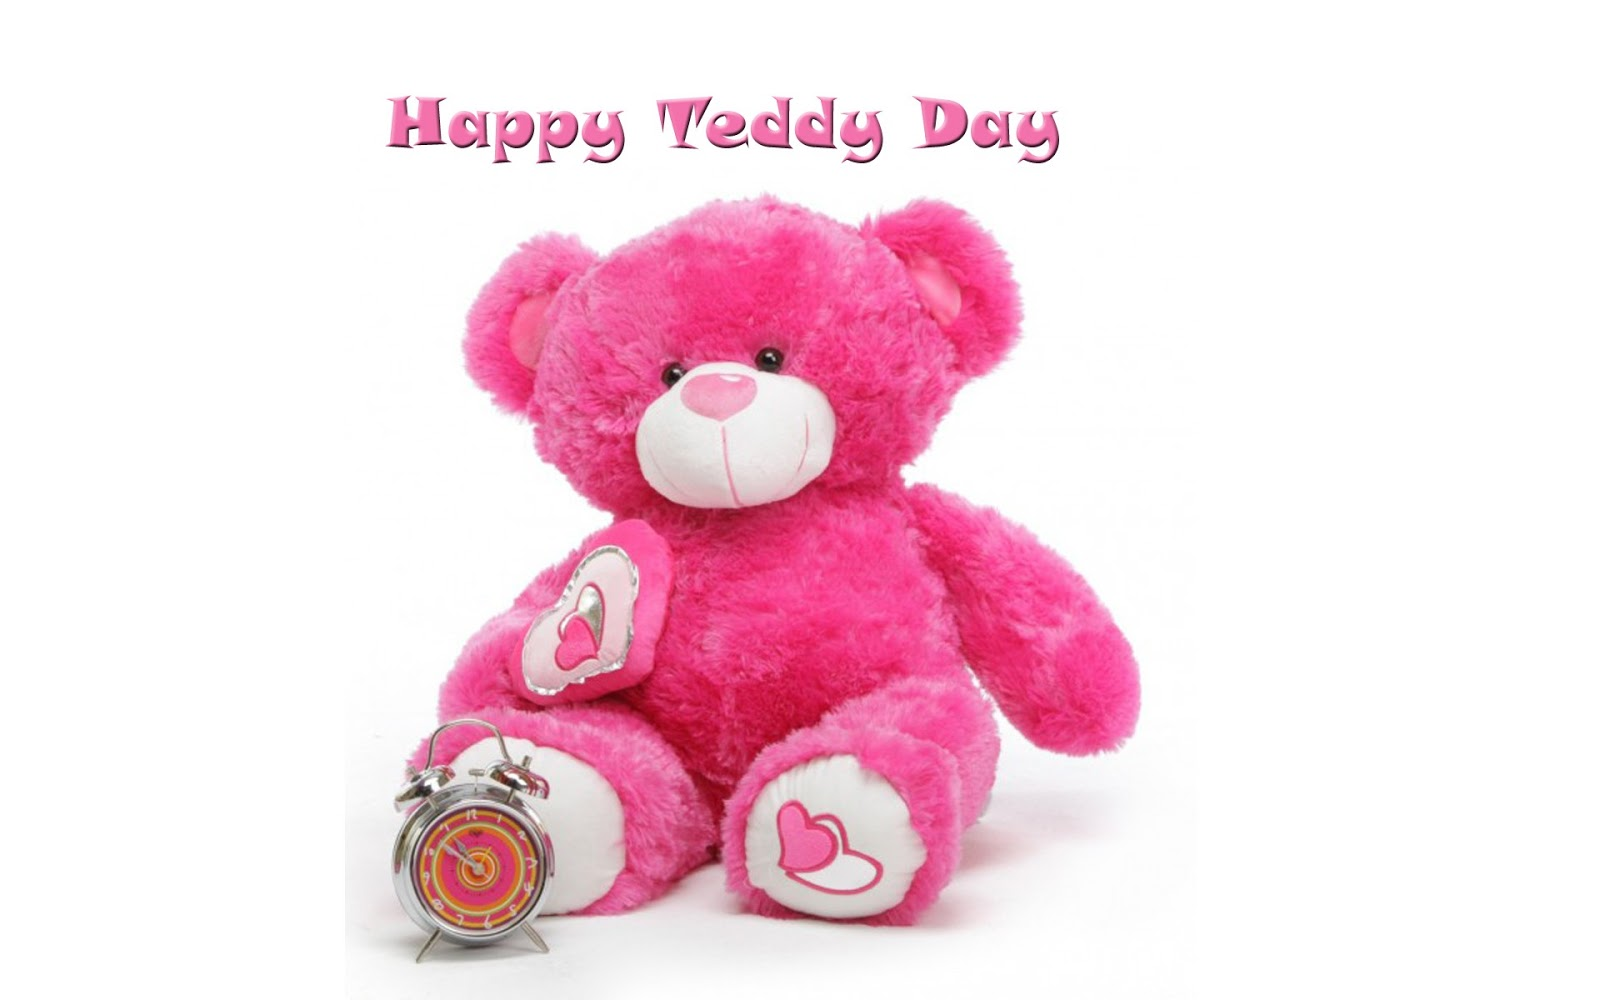 Happy Teddy Day 2019 Images Quotes GIF and Wishes For Your Loved Ones